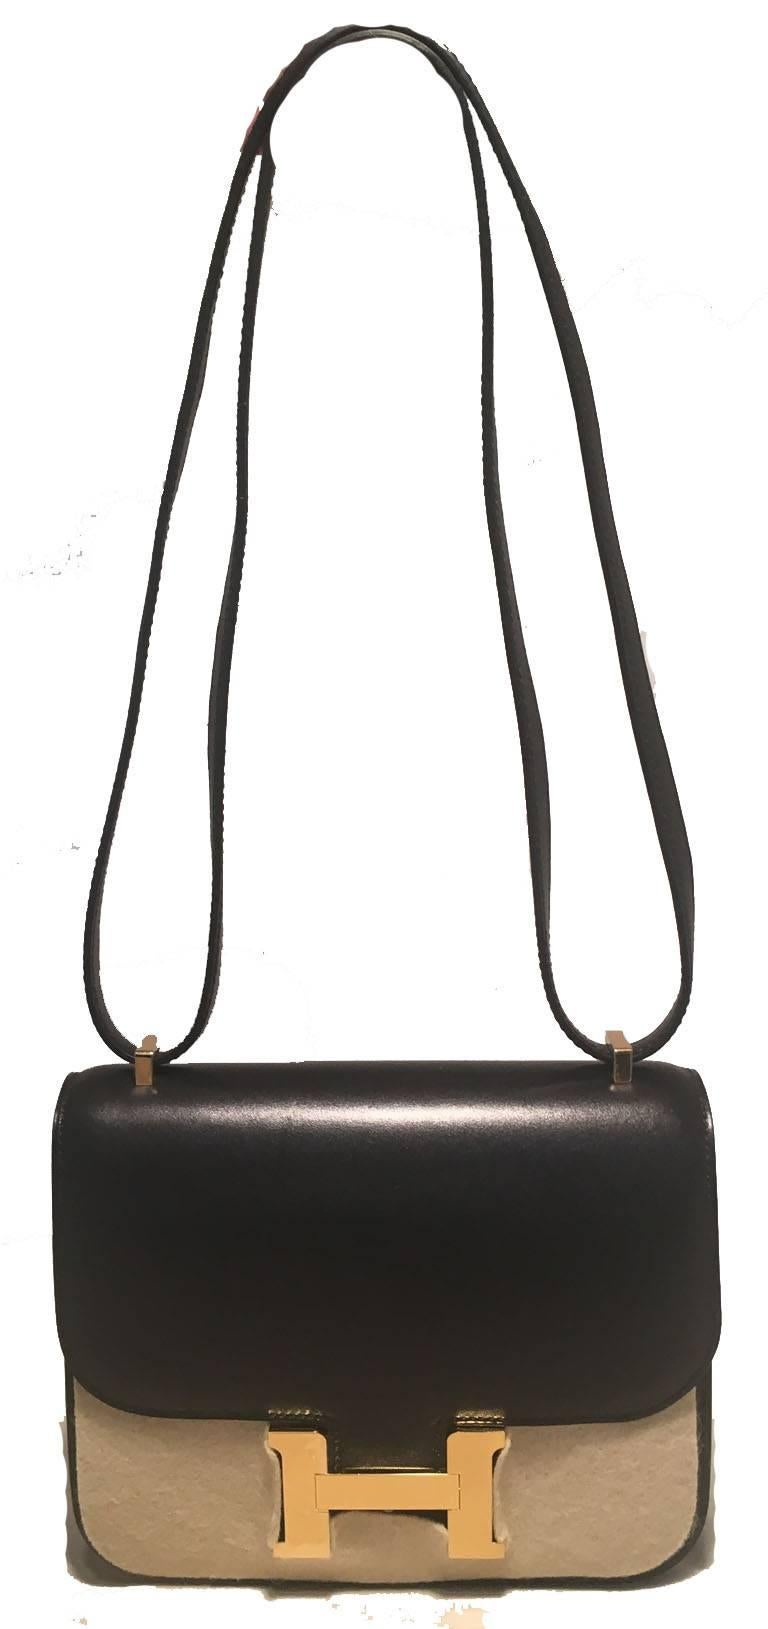 NWOT Hermes 18cm constance shoulder bag in NEW unused condition.  Black box calf leather body with shining gold hardware.  Front H logo magnetic flap closure opens to a black kidskin lined interior that holds 2 separate storage compartments and a